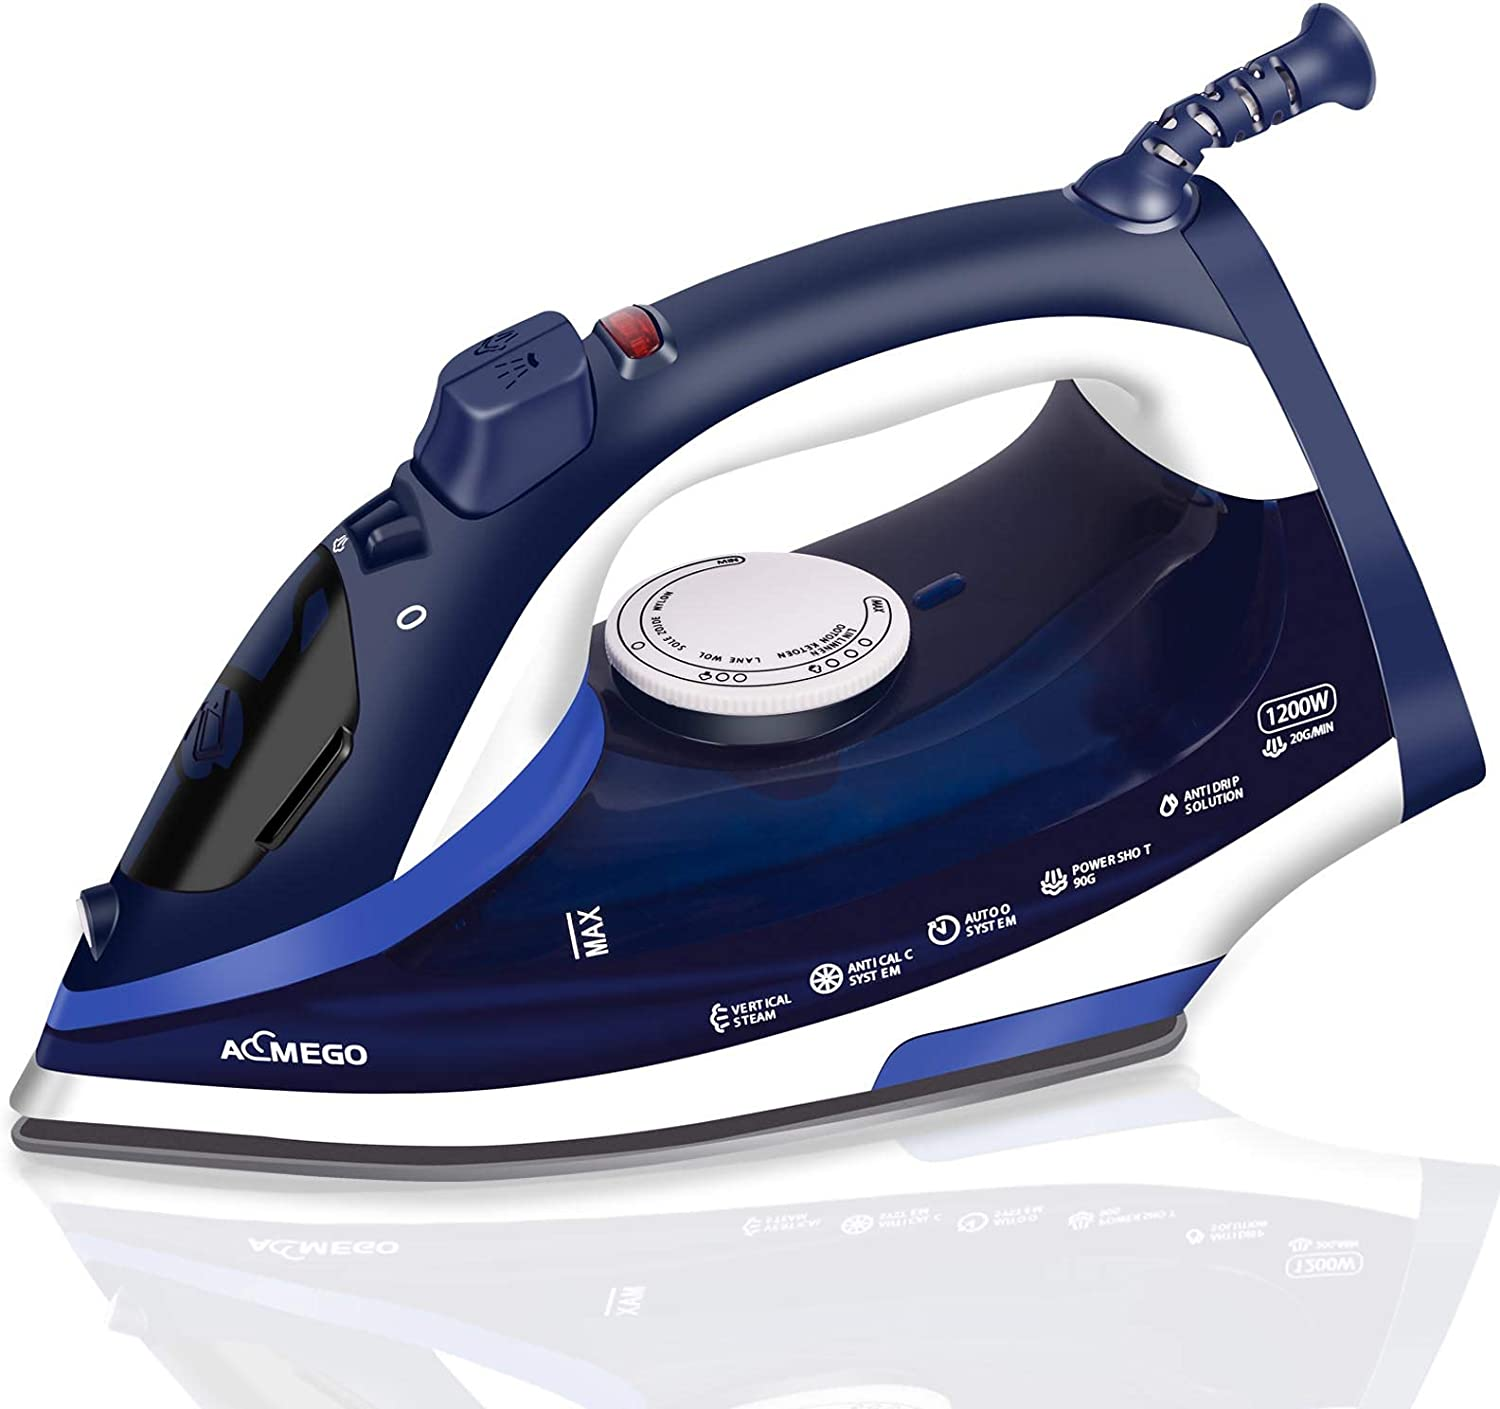 AEMEGO Steam Iron for Clothes Lightweight Portable Iron with Non Stick Ceramic Soleplate Anti Drip Vertical Irons for Ironing Clothes Self-Clean Auto-Off Function Small Size for Home Travel